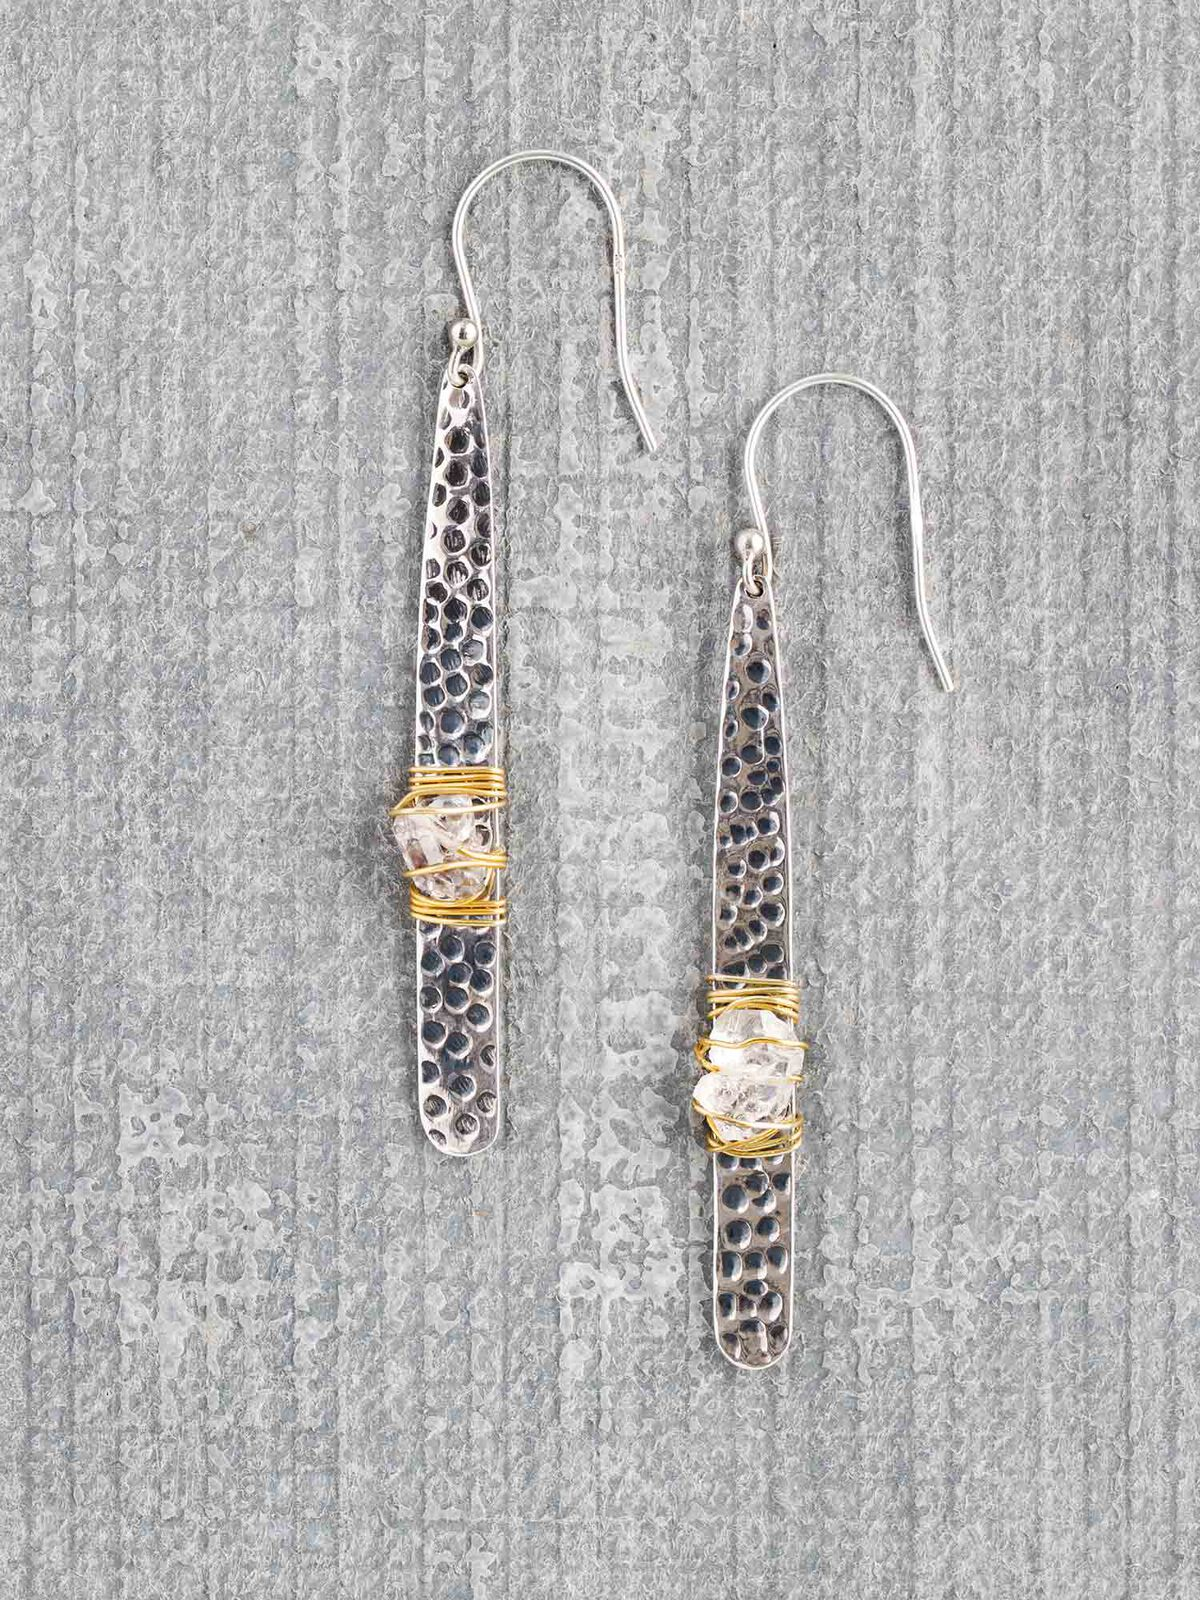 Baizaar  Hammered Silver Wrapped Earring